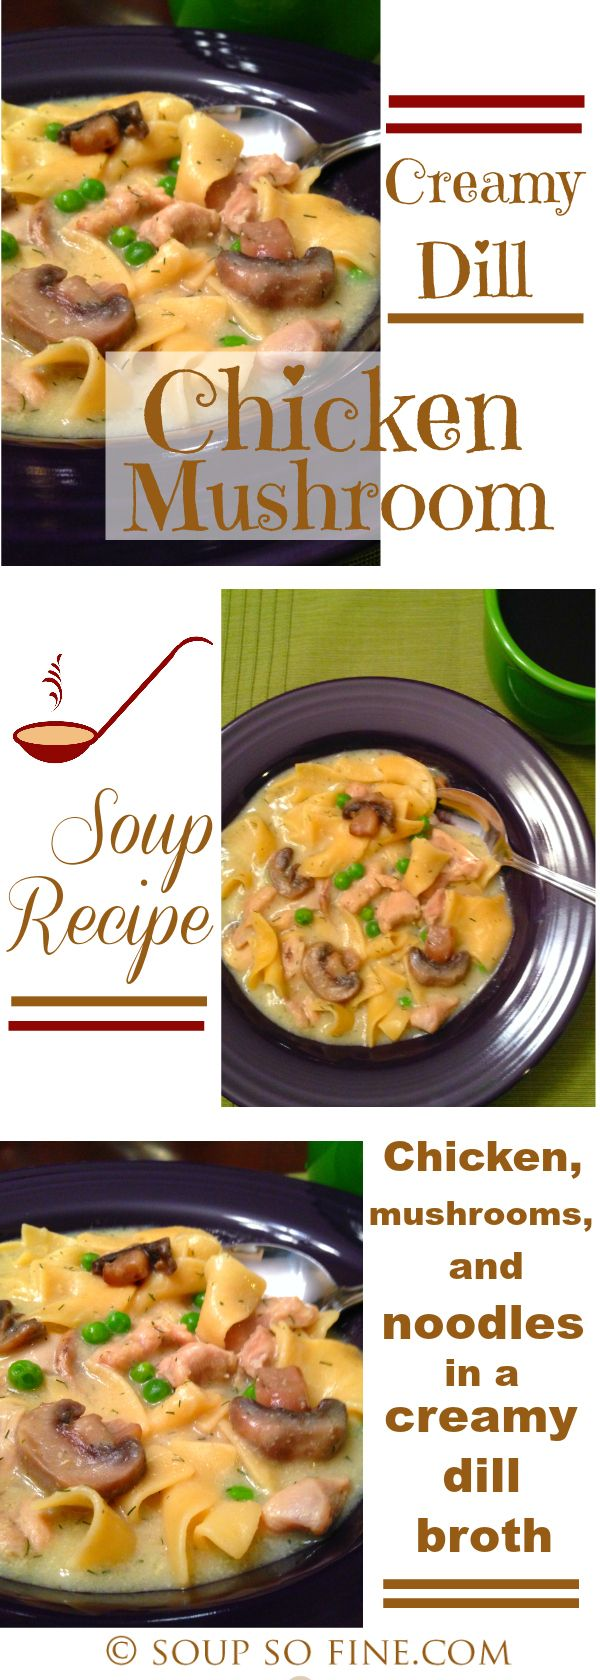 A delicious chicken and mushroom soup recipe rich with wide egg noodles and green peas in a creamy dill broth. Wonderful!